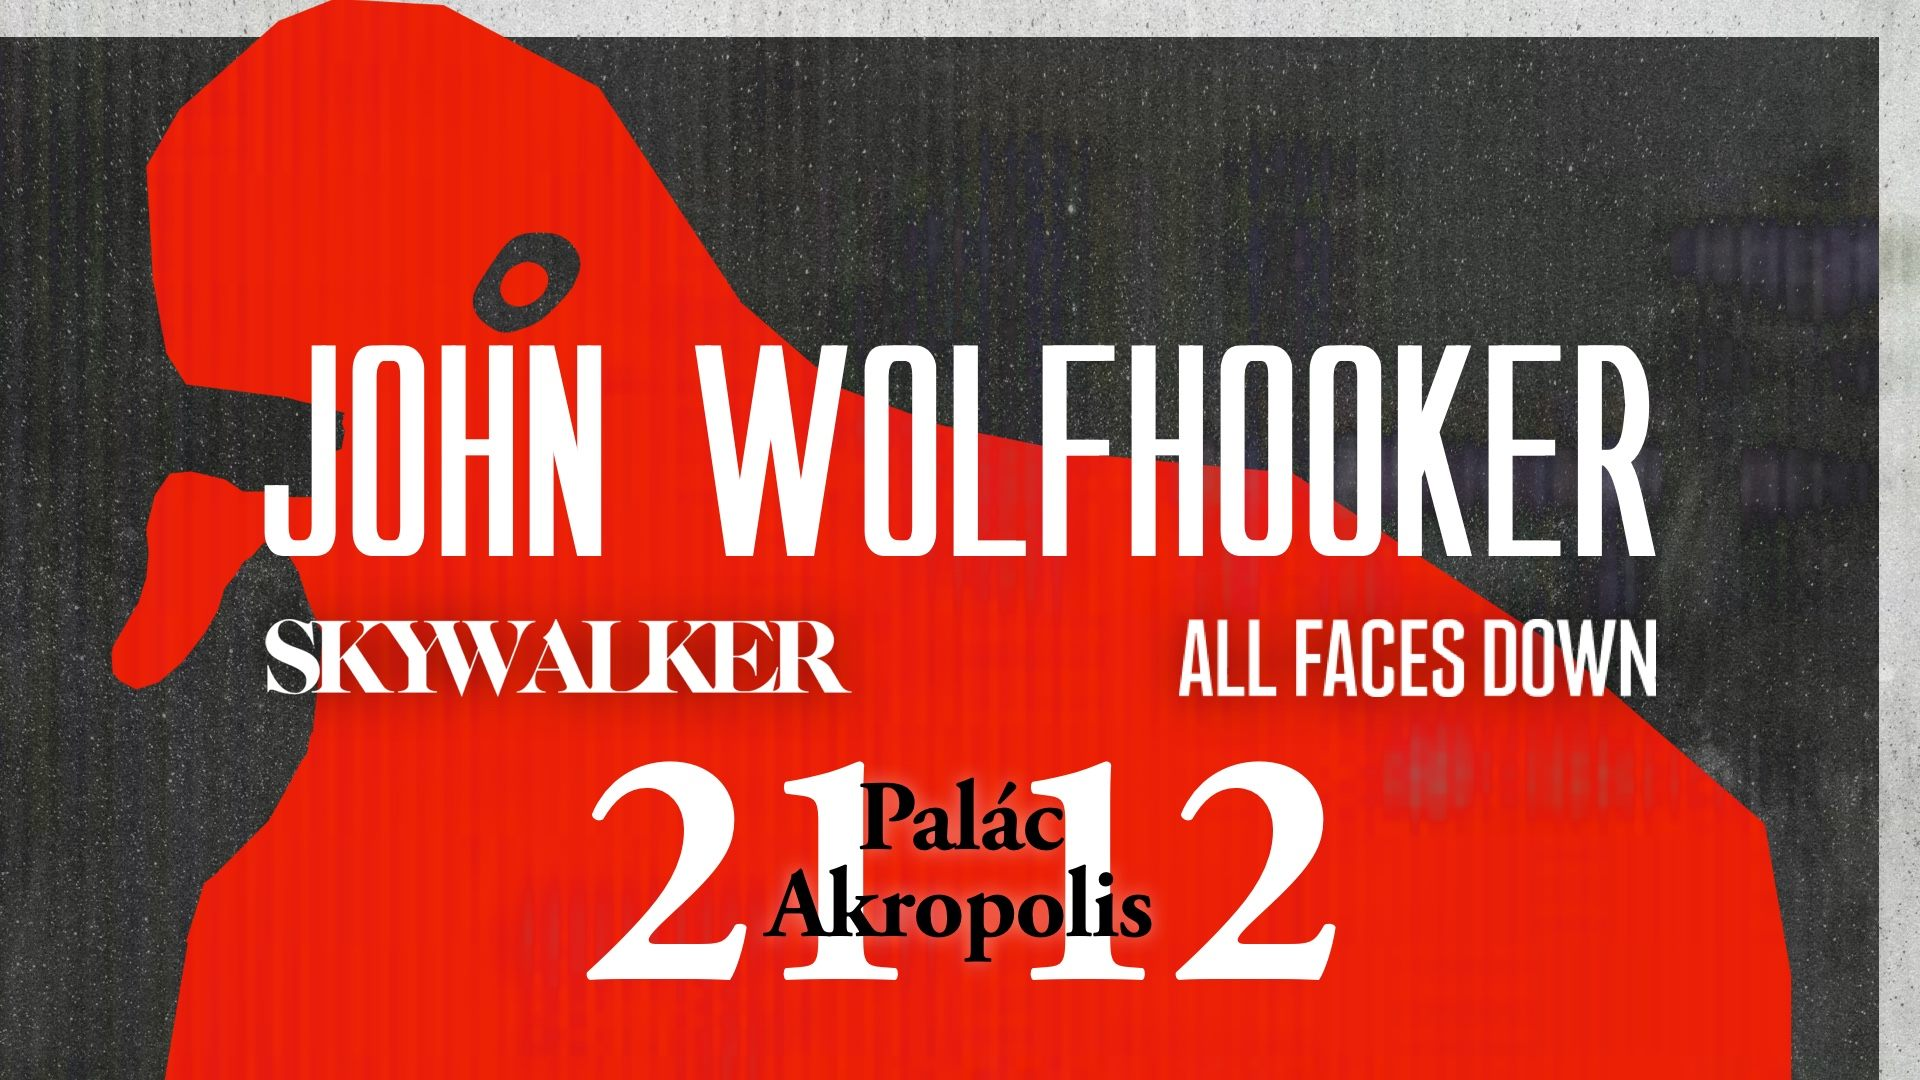 JOHN WOLFHOOKER, SKYWALKER, ALL FACES DOWN (AT)